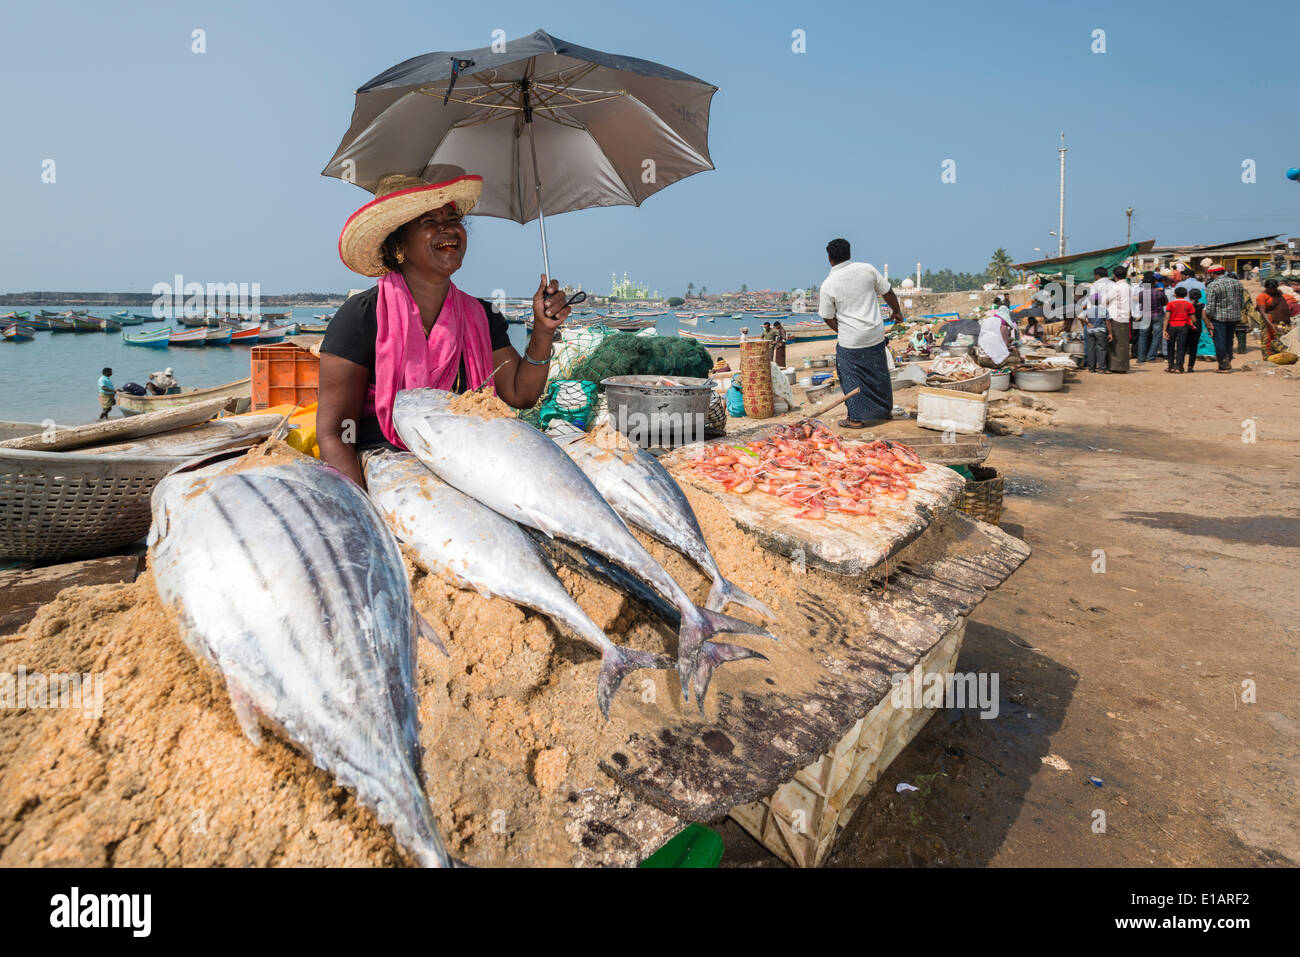 Woman selling fish, Vizhinjam, Kerala, India - Stock Image